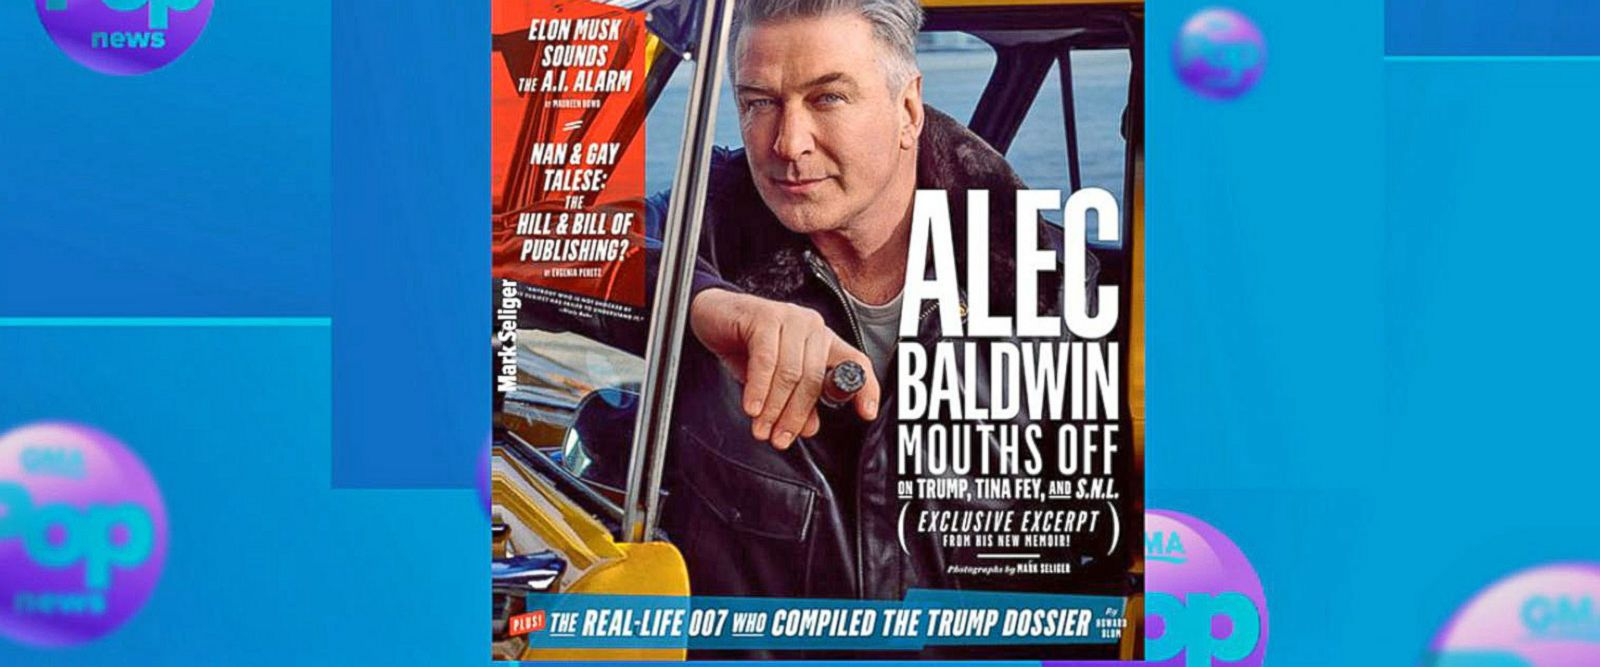 VIDEO: Alec Baldwin says he 'fell in love' with Tina Fey at 1st meeting